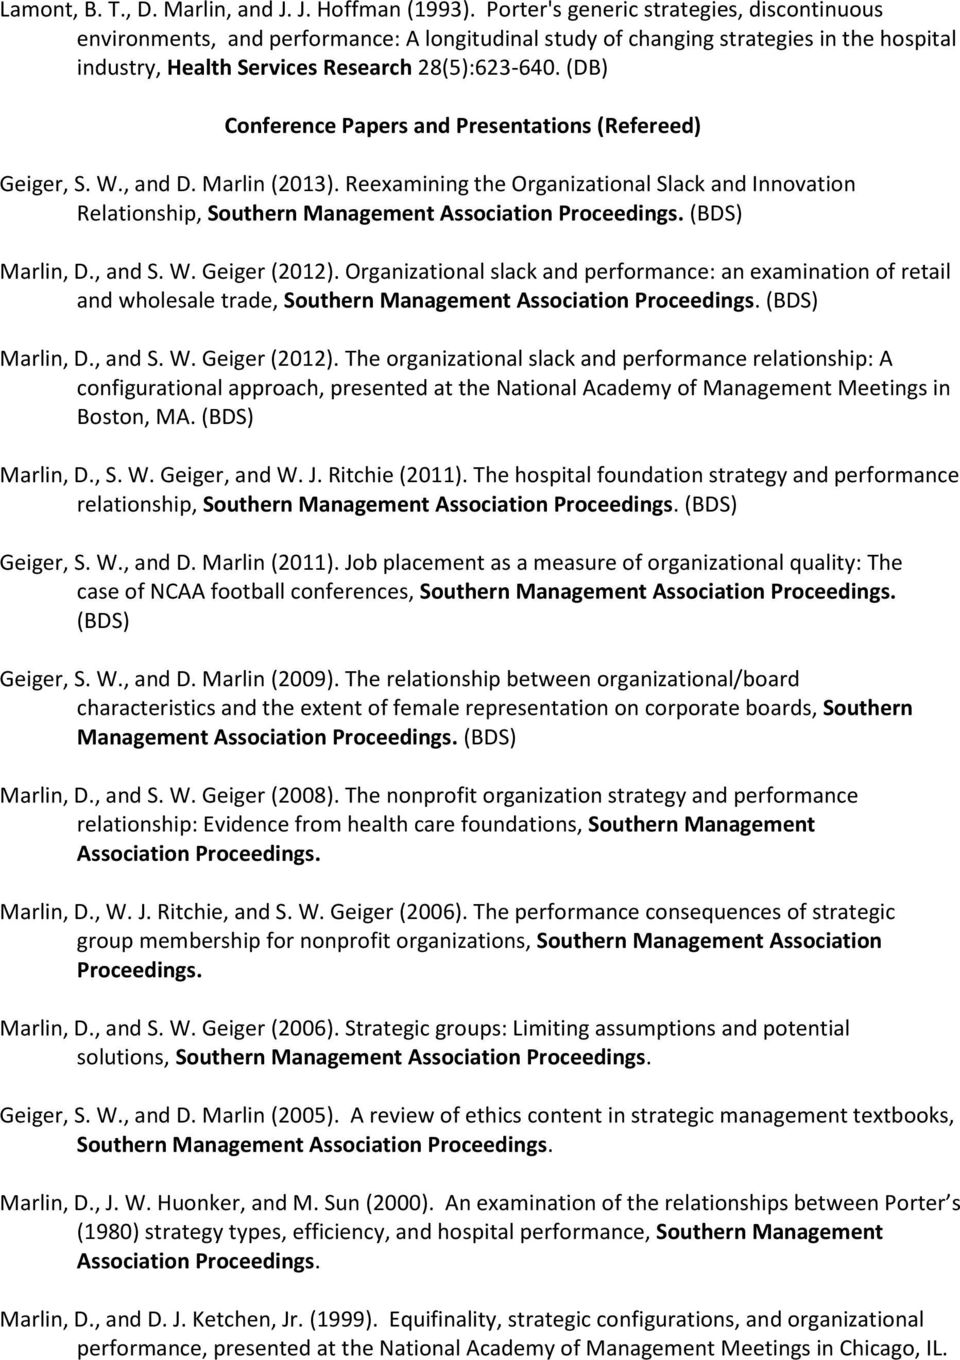 (DB) Conference Papers and Presentations (Refereed) Geiger, S. W., and D. Marlin (2013). Reexamining the Organizational Slack and Innovation Relationship, Southern Management Association Proceedings.